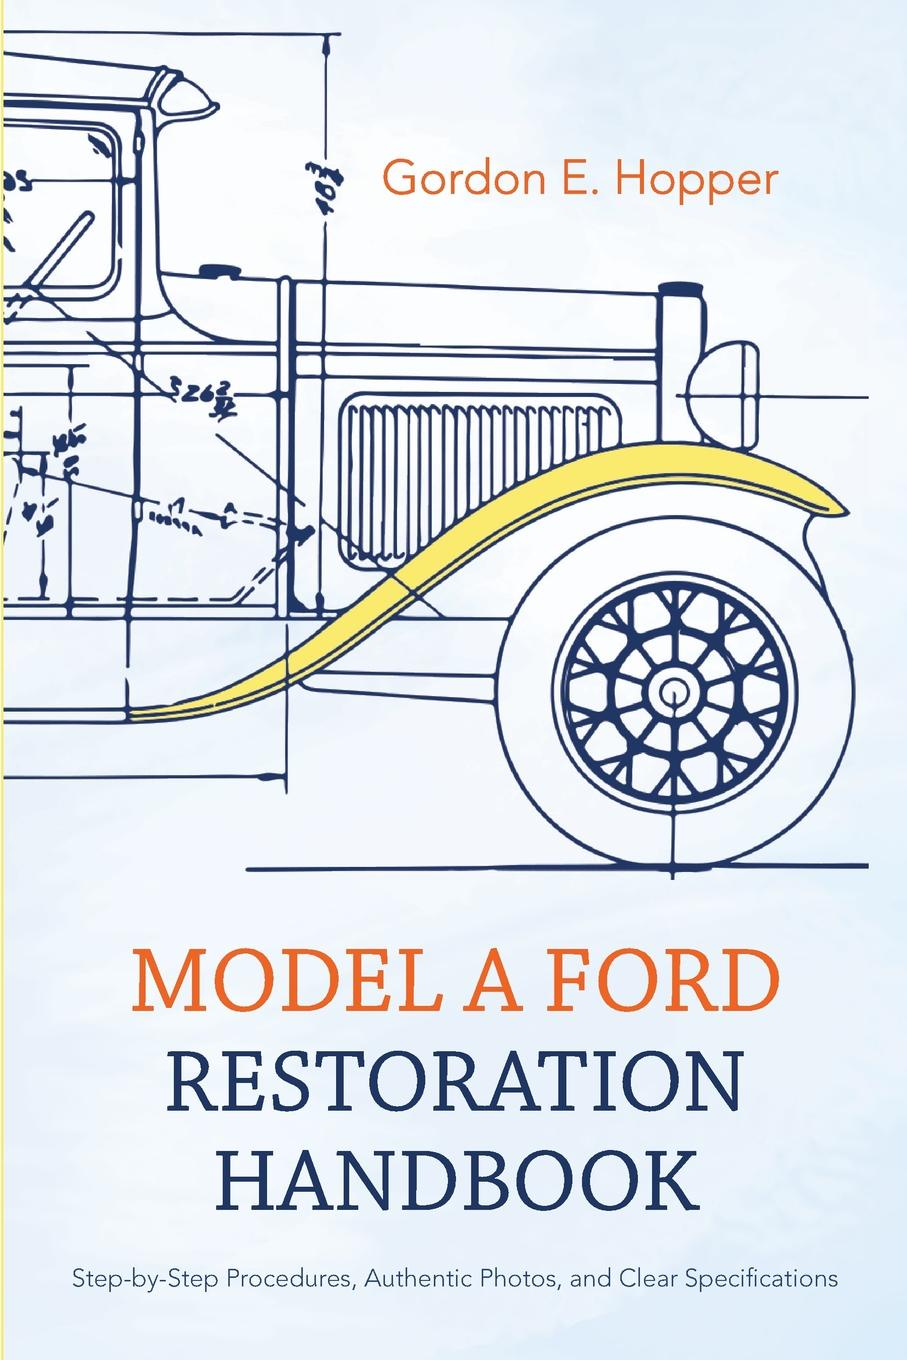 Gordon E. Hopper Model A Ford Restoration Handbook крючки caperlan крючок для ловли карпа hook carp big fish